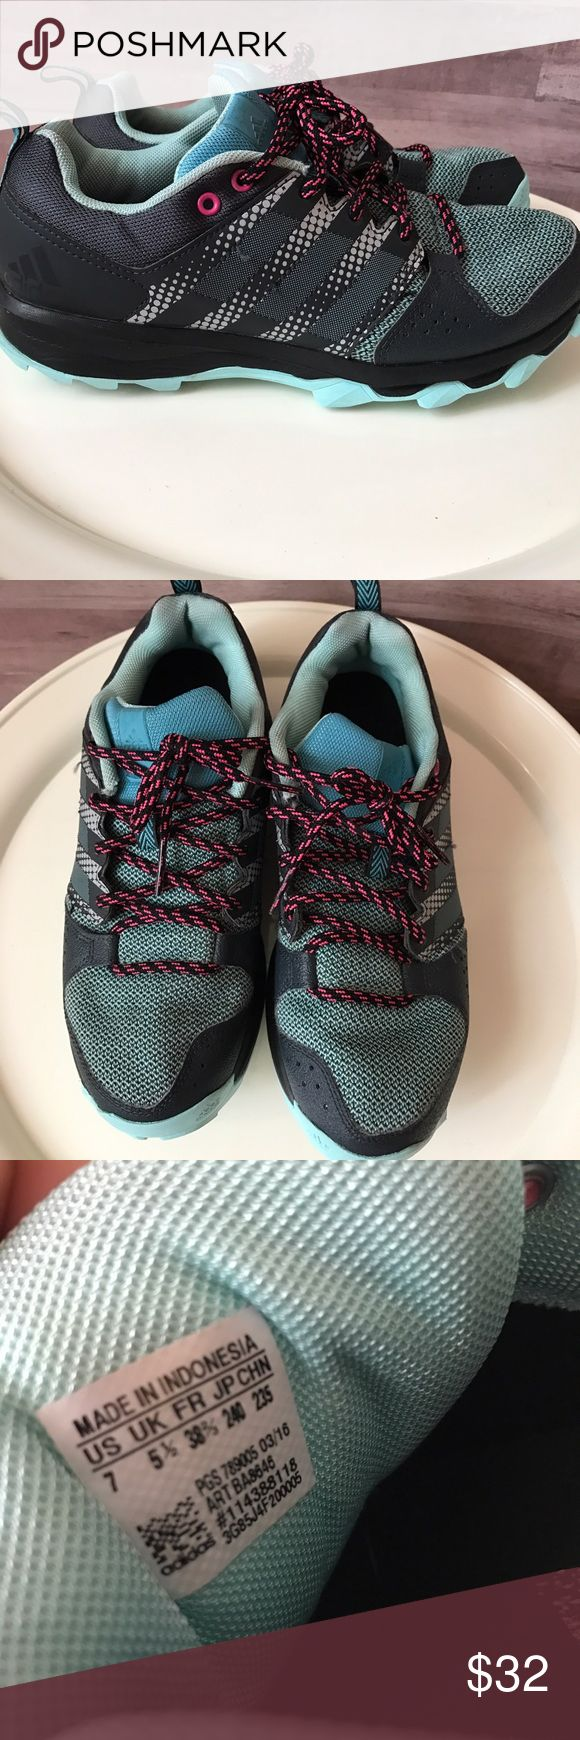 Adidas Supernova Ladies Running Shoes Size 7. In like new condition. Super lightweight with great arch support. adidas Shoes Sneakers